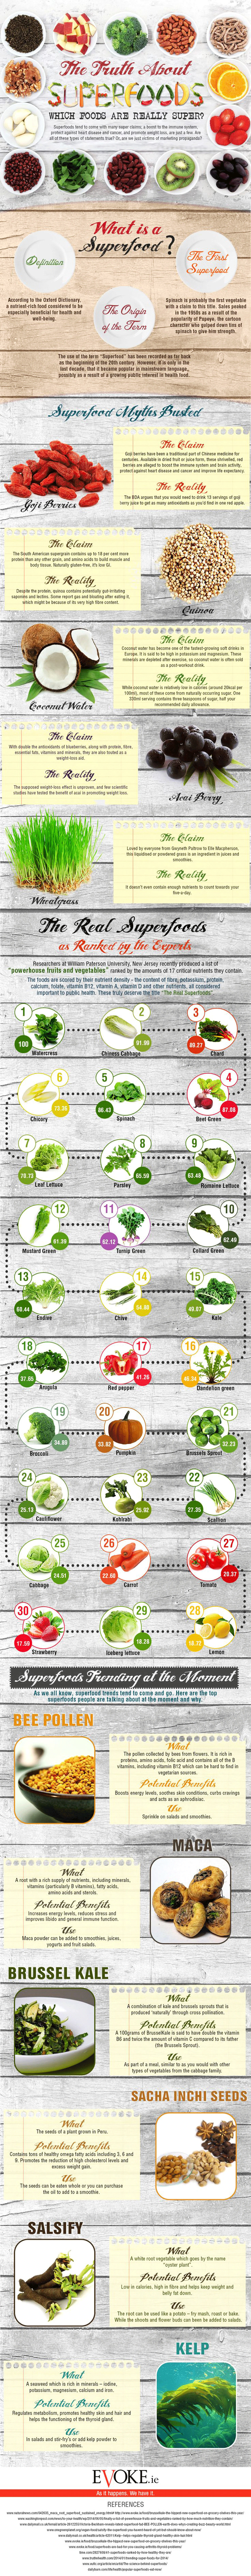 Top 20 Superfoods in the World Infographic